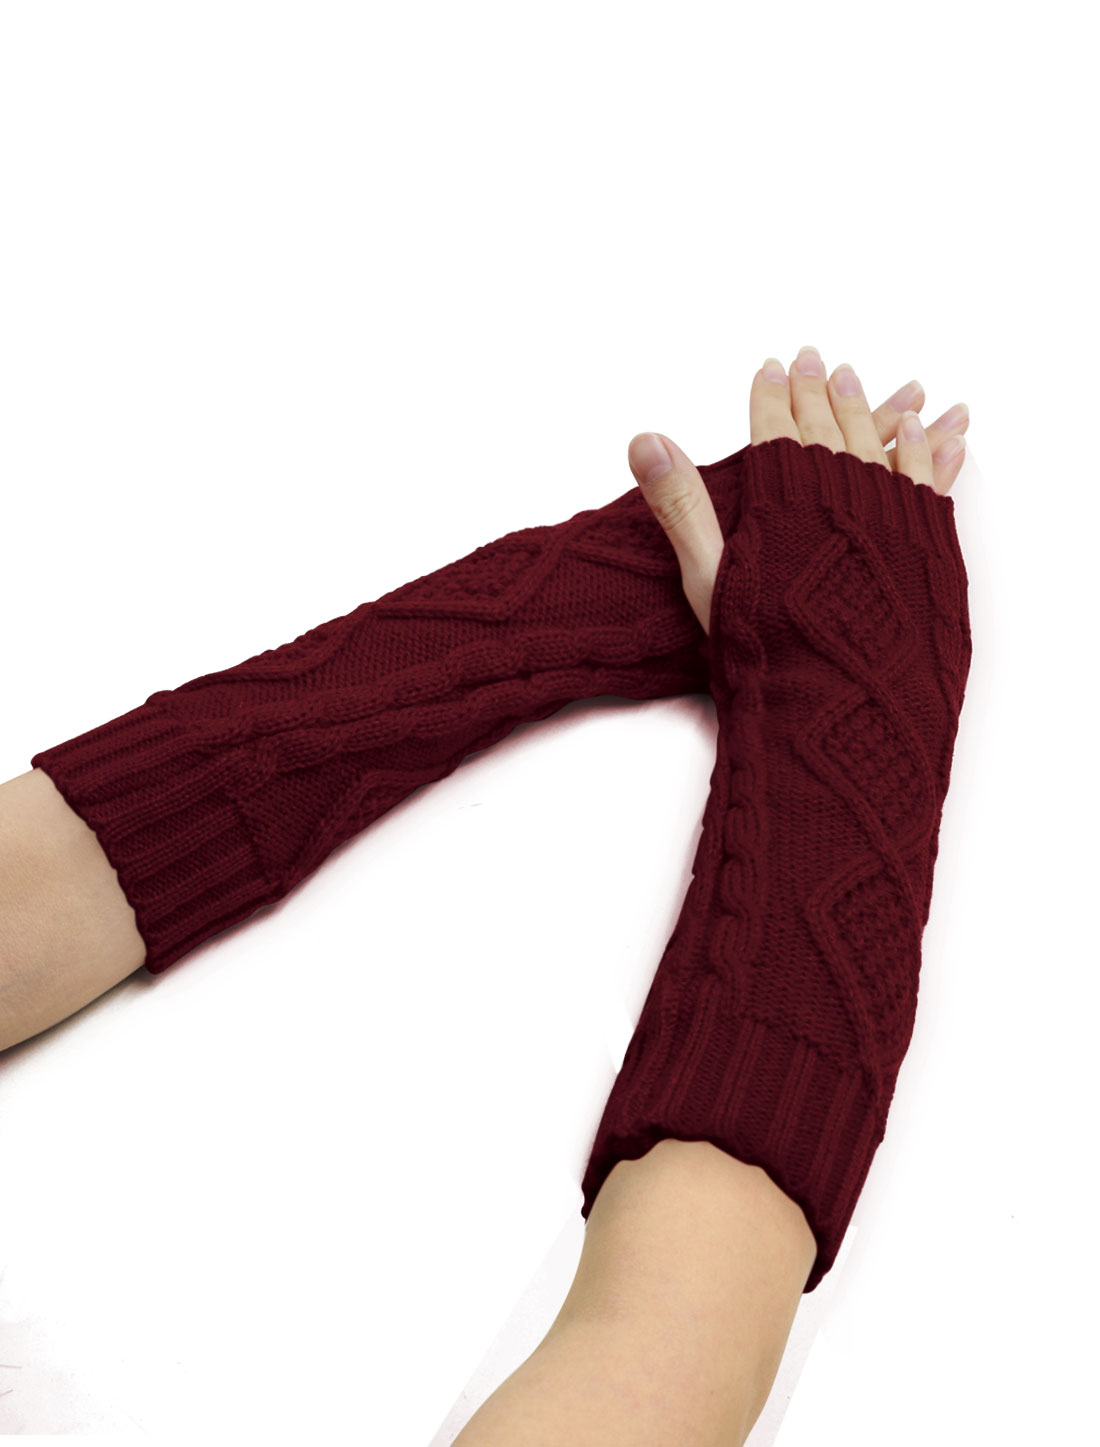 Women Elbow Length Argyle Design Cable Knit Arm Warmers Pair Burgundy